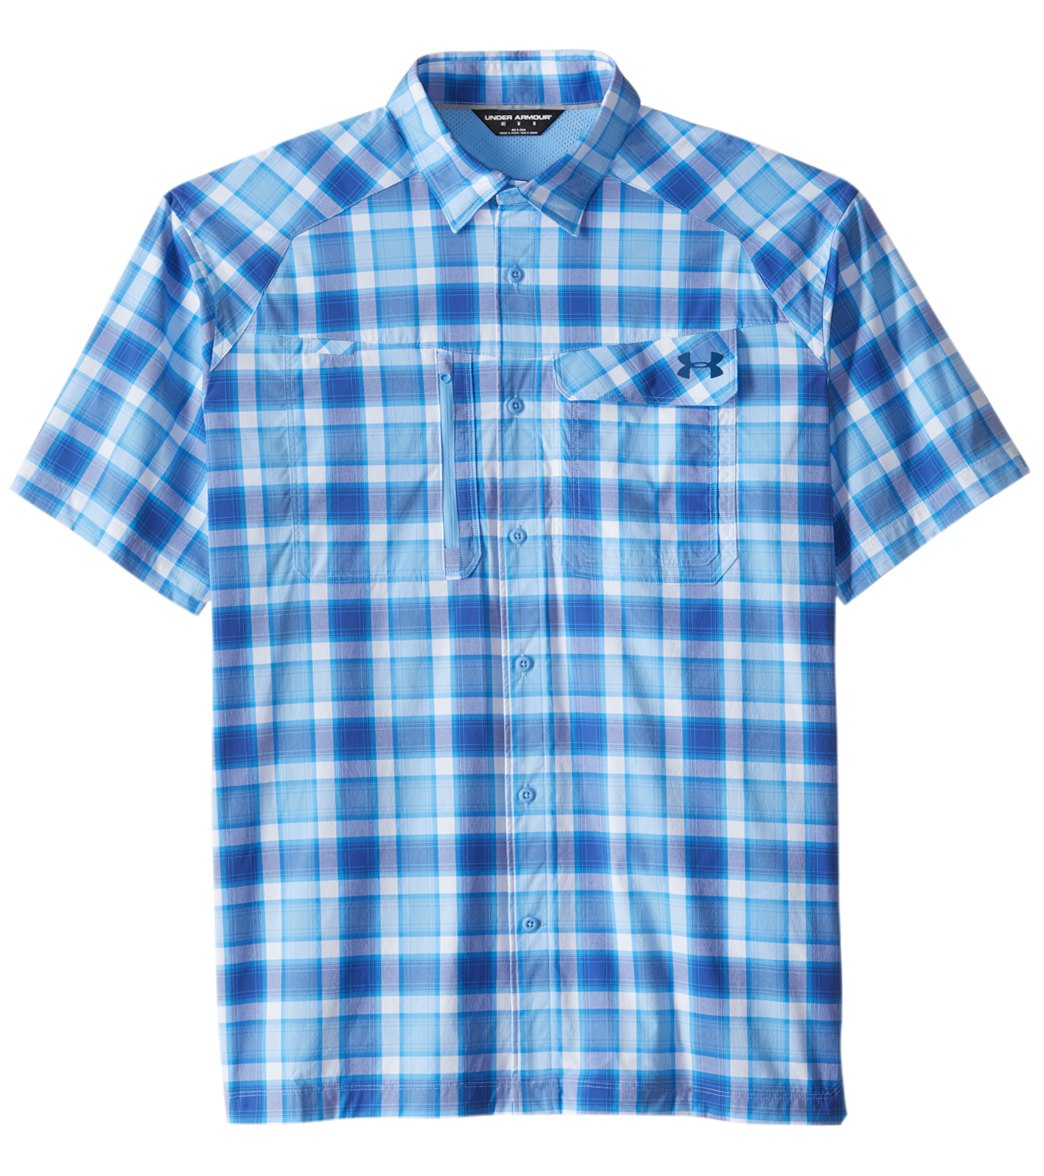 b58cdcc7d8 Under Armour Men's Fish Hunter Plaid Short Sleeve Shirt